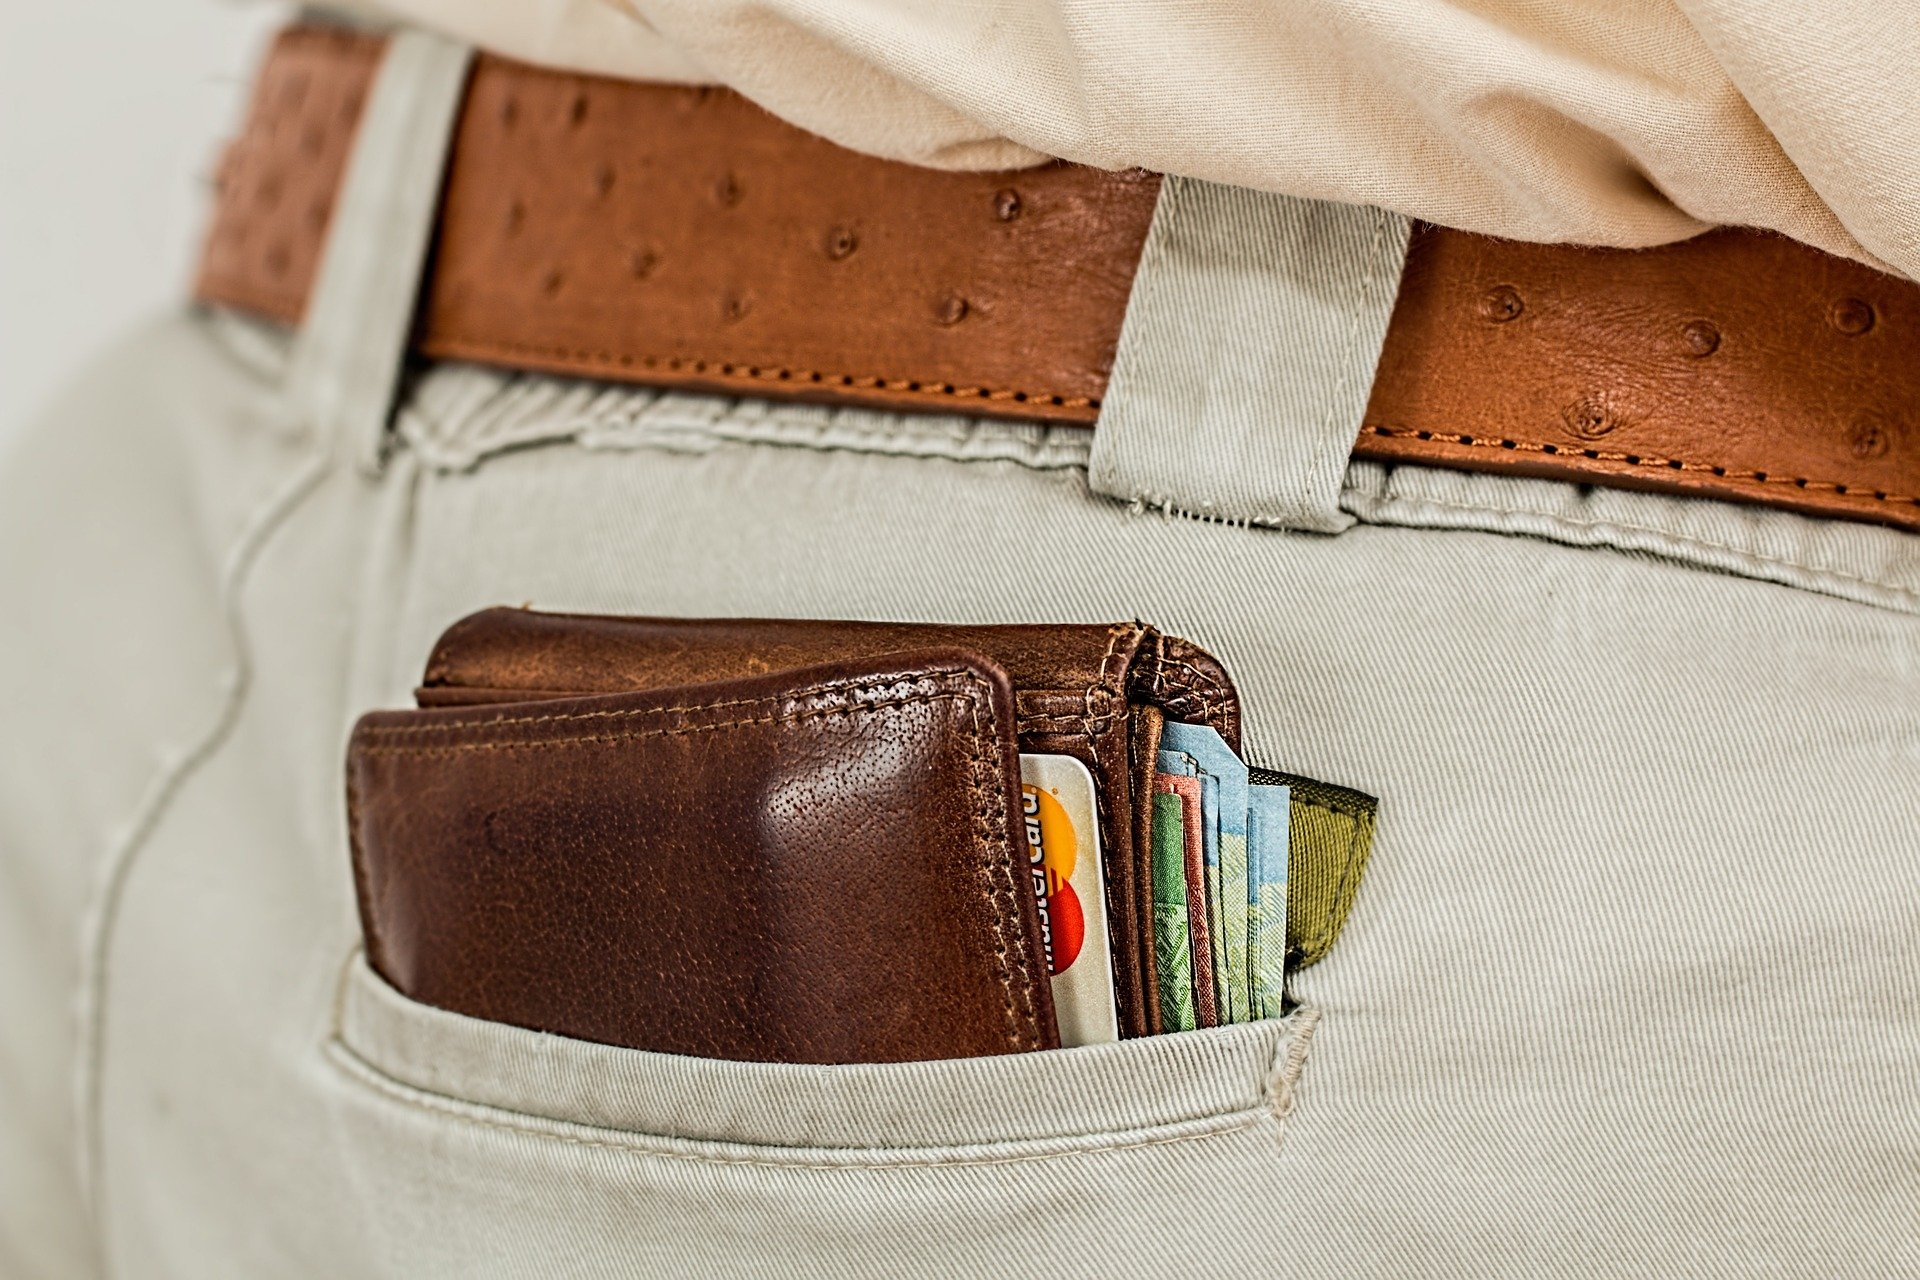 Do You Want A High Or Low Credit Score?